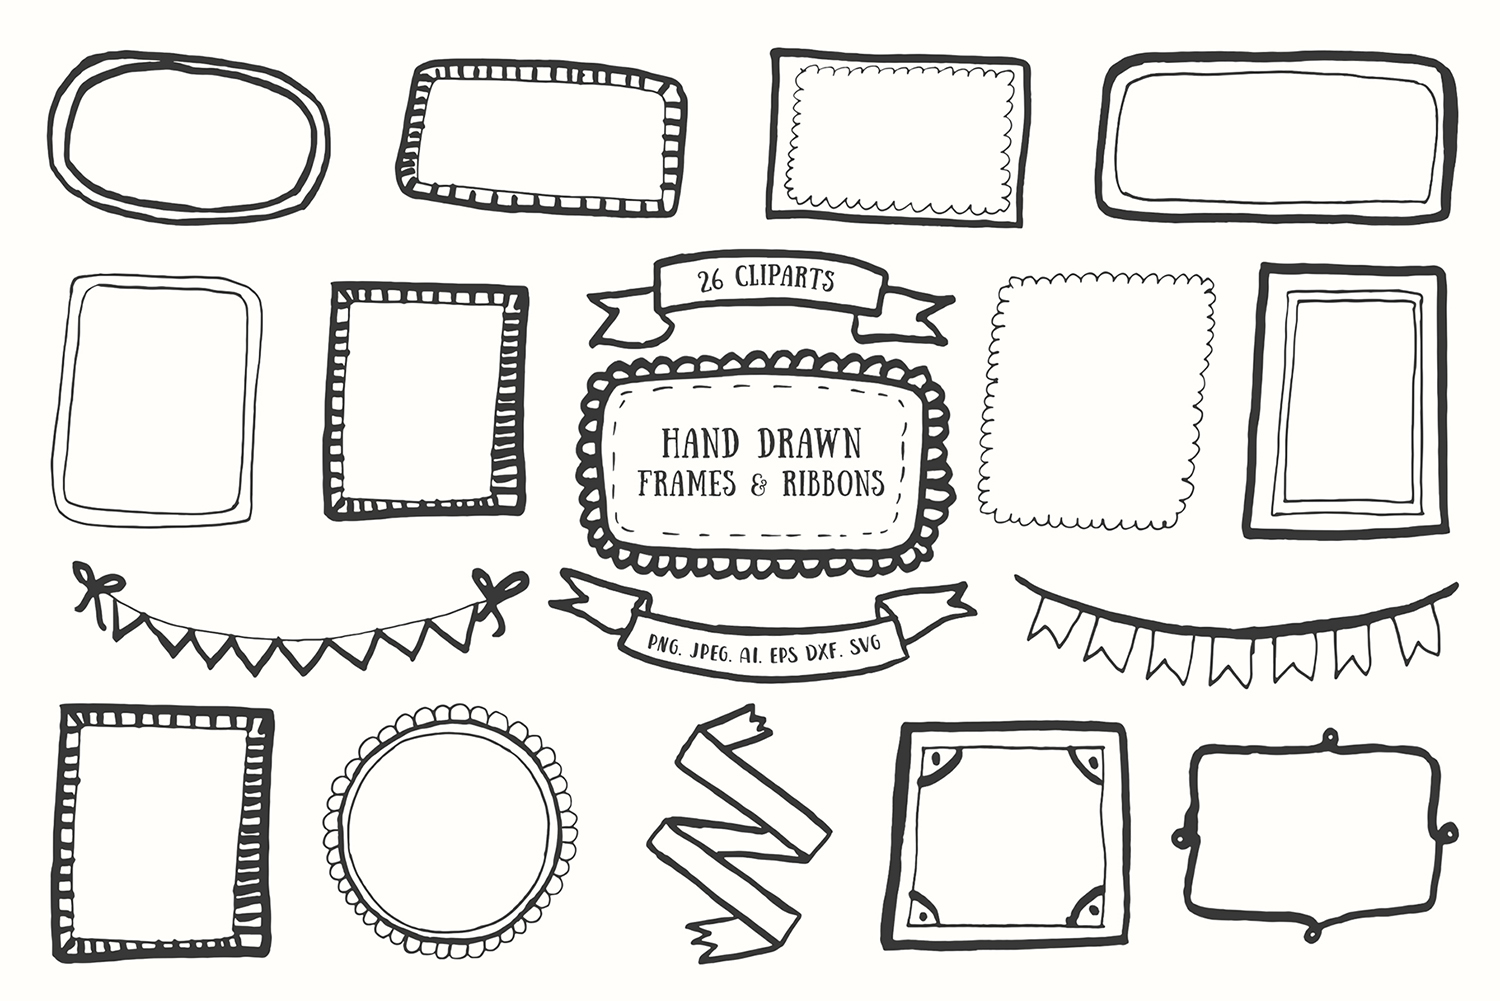 Download Free 20 Handdrawn Frames Ribbons Cliparts Graphic By Creative for Cricut Explore, Silhouette and other cutting machines.